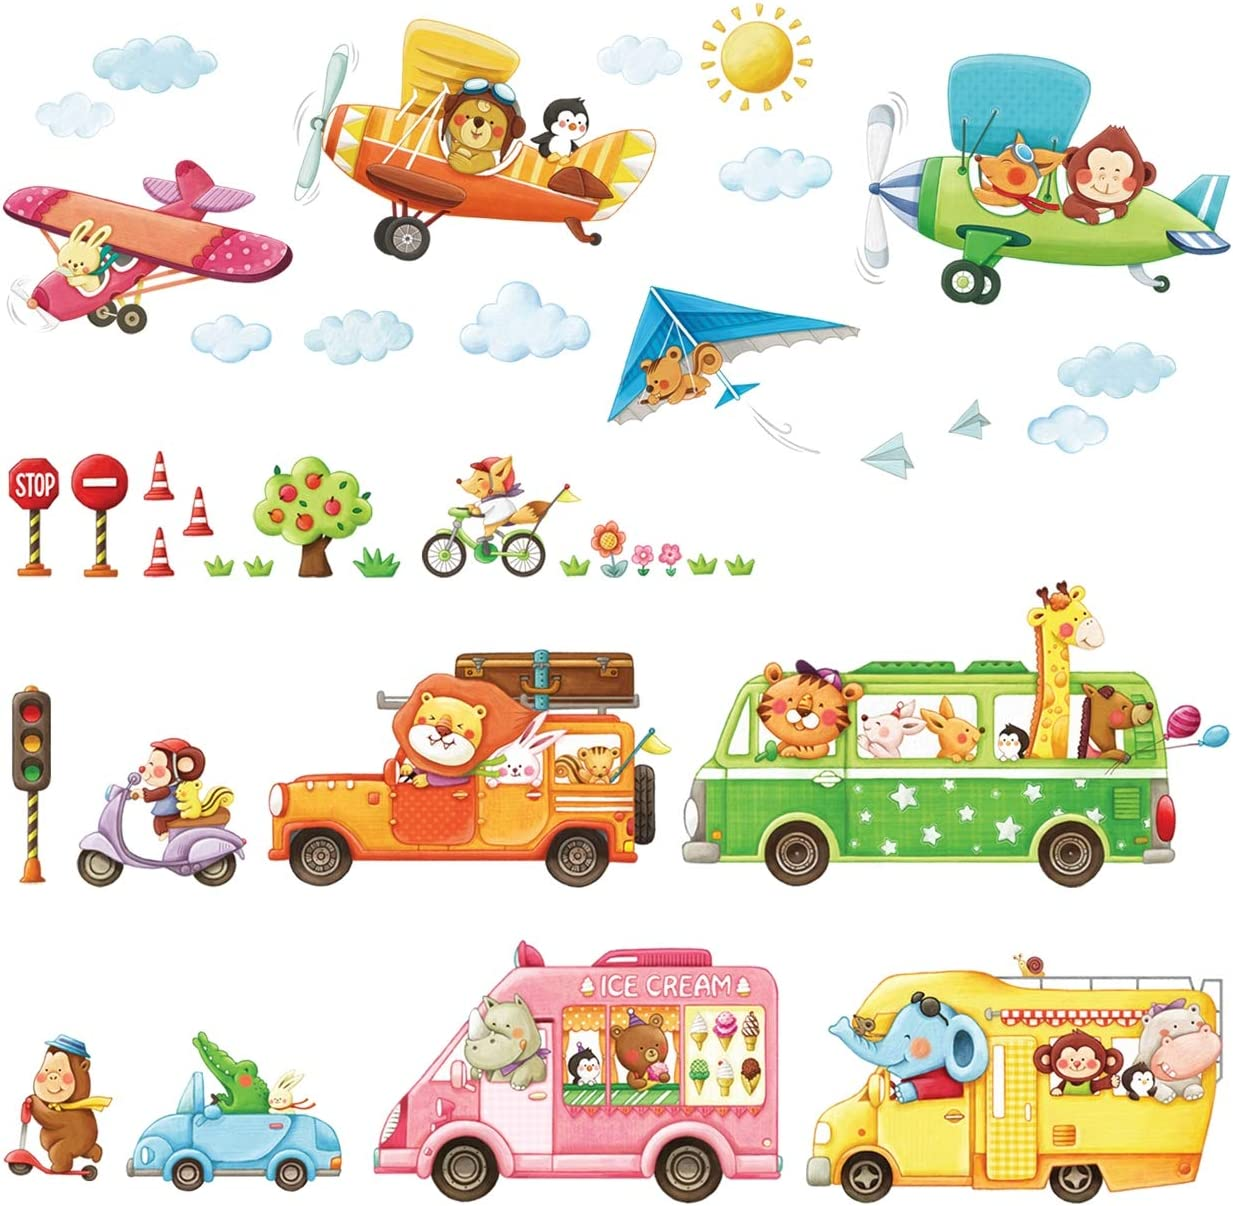 DECOWALL DAT-1806P1506B Animal Transports and Biplanes Kids Wall Stickers Wall Decals Peel and Stick Removable Wall Stickers for Kids Nursery Bedroom Living Room